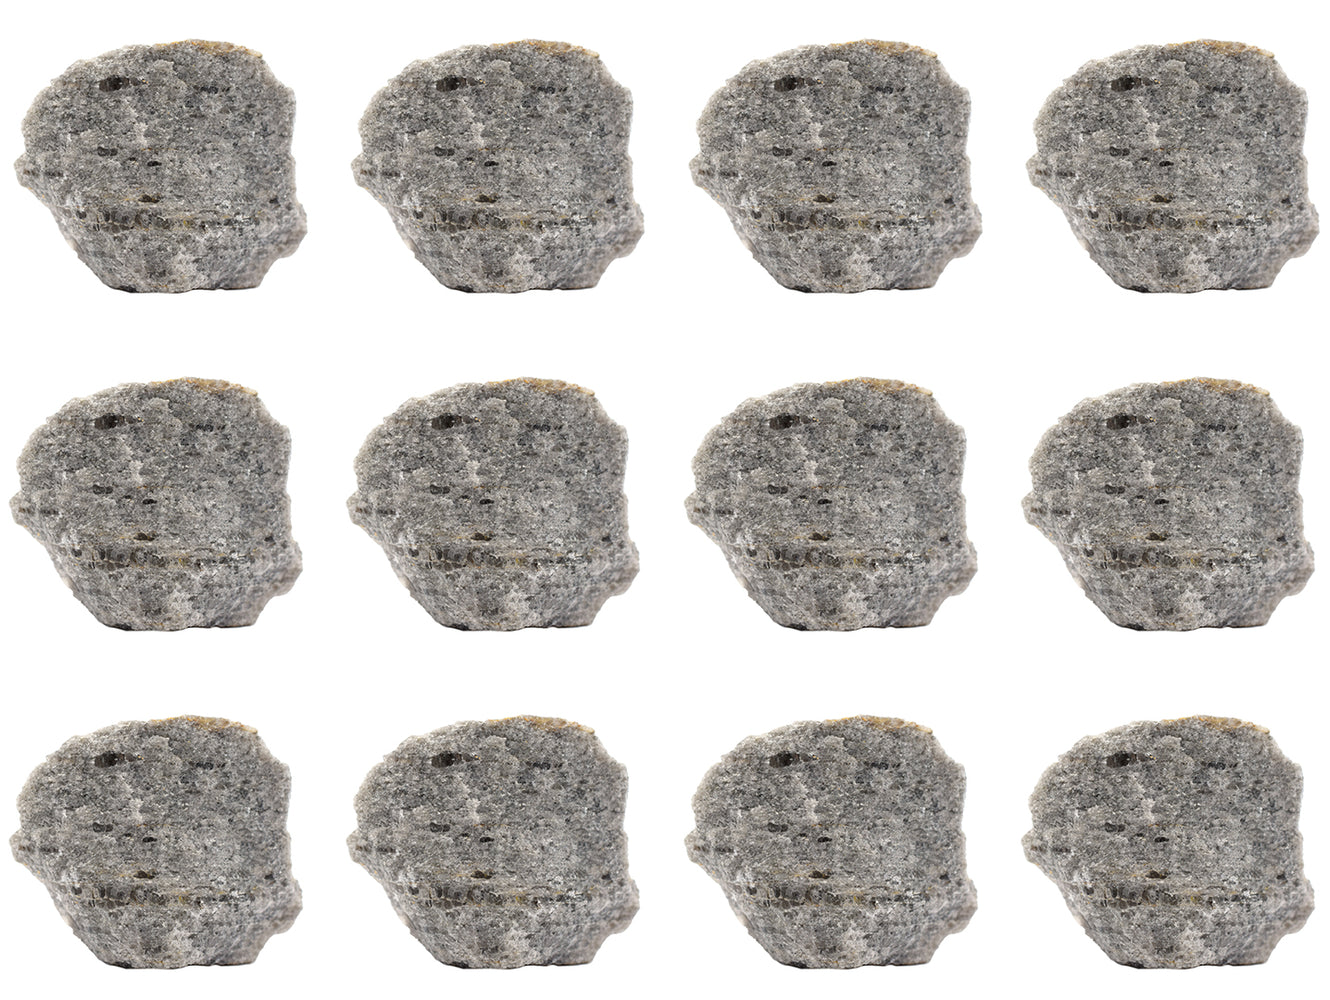 "12PK Raw Mica Schist, Metamorphic Rock Specimens - Approx. 1"" - Geologist Selected & Hand Processed - Great for Science Classrooms - Class Pack - Eisco Labs"